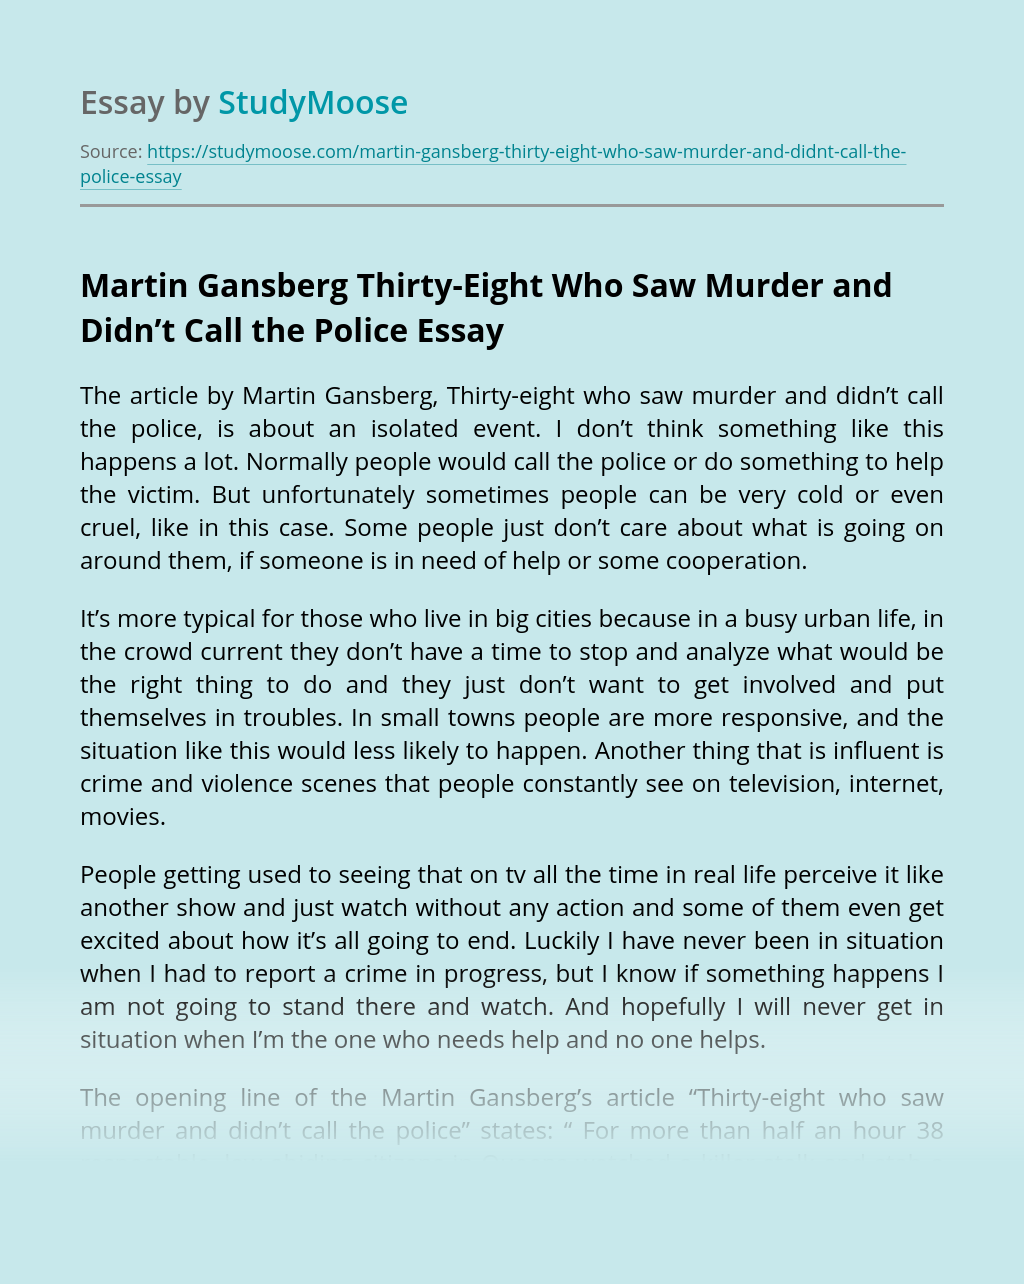 Martin Gansberg Thirty-Eight Who Saw Murder and Didn't Call the Police